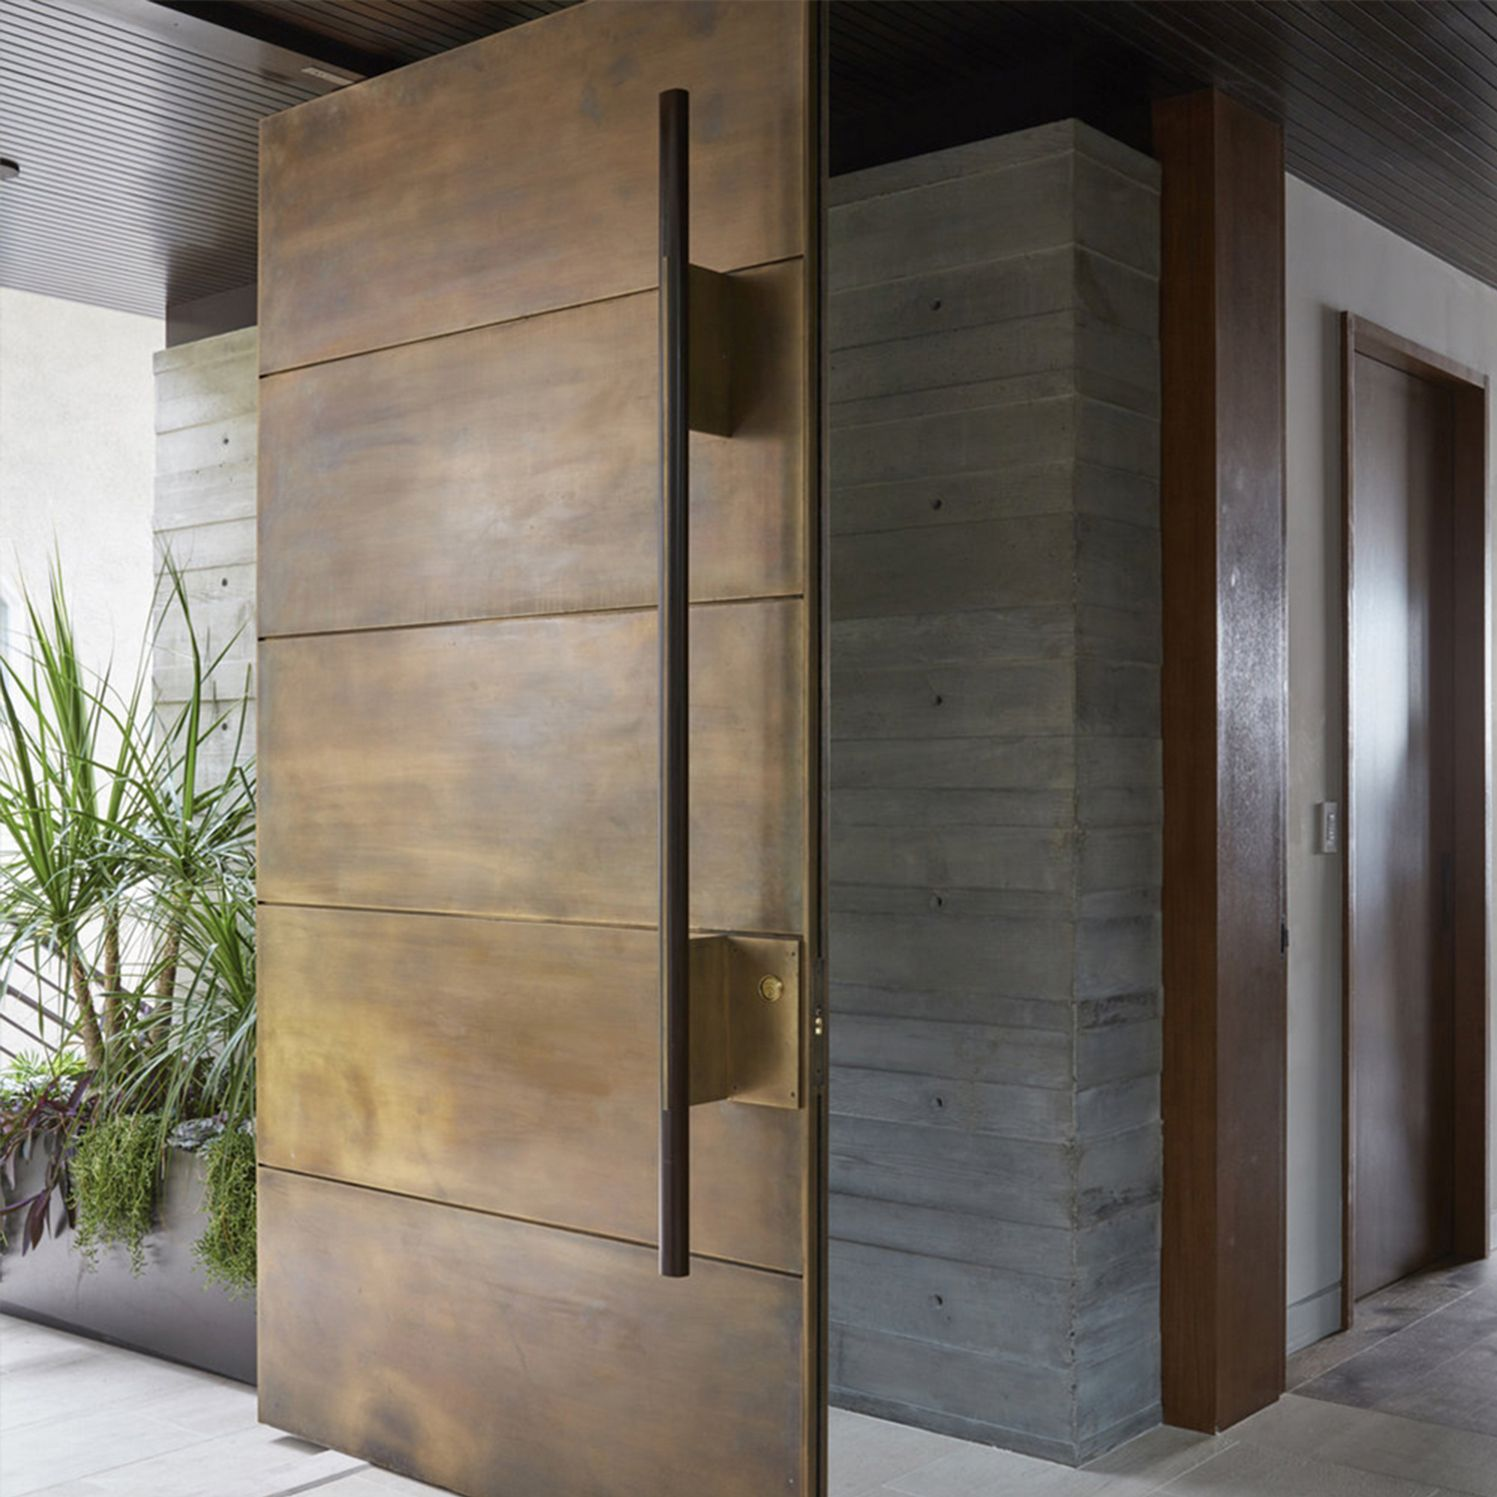 3rdandstrand2 Jpg Door Design Modern Door Design Entrance Door Design